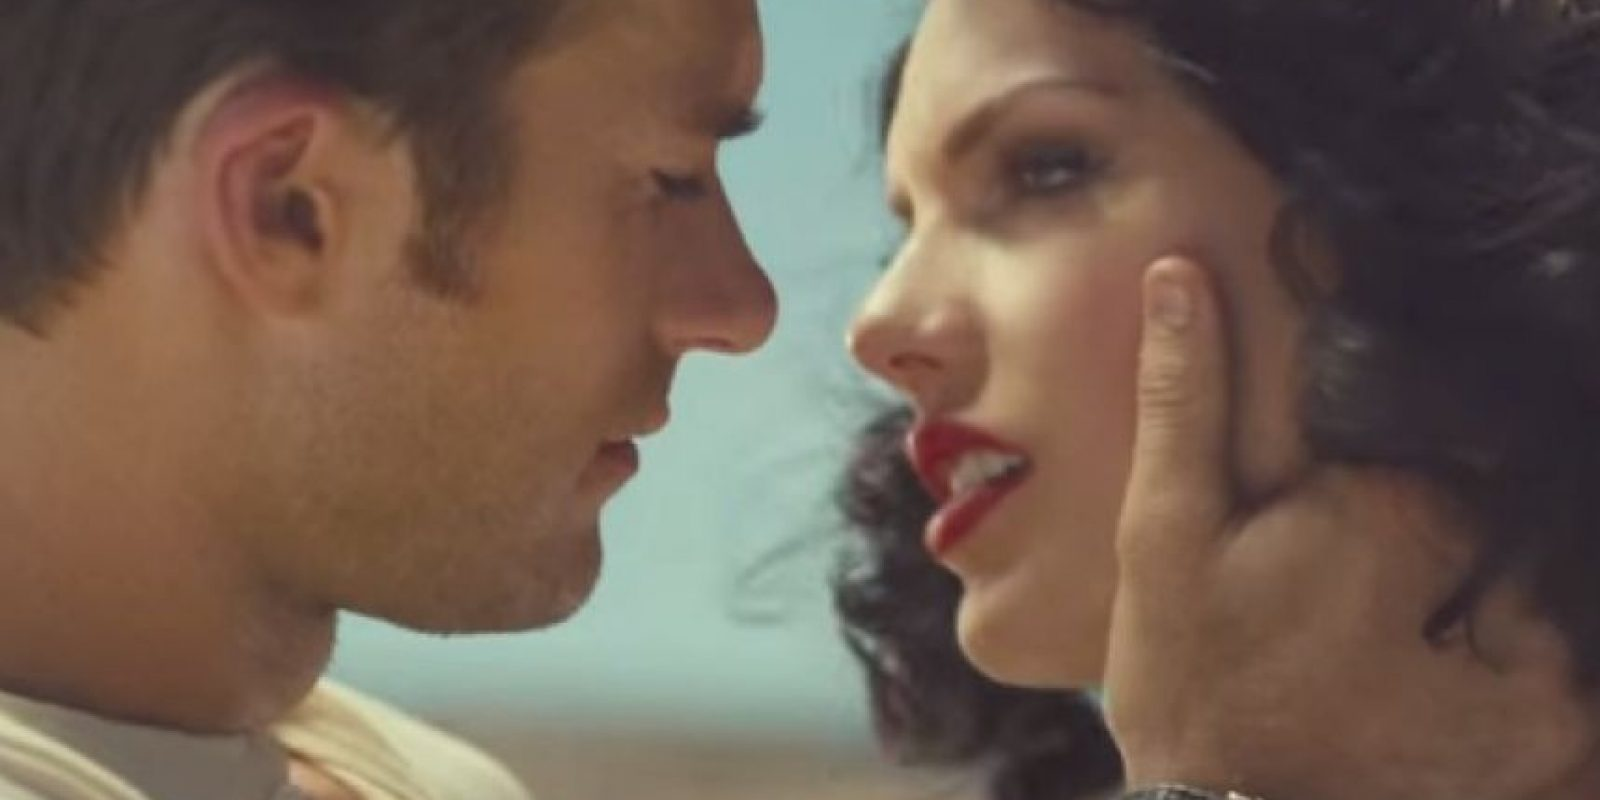 """Wildest Dreams"" narra la historia de amor entre una actriz de Hollywood y un actor en el set de grabación. Foto: YouTube/TaylorSwiftVEVO"